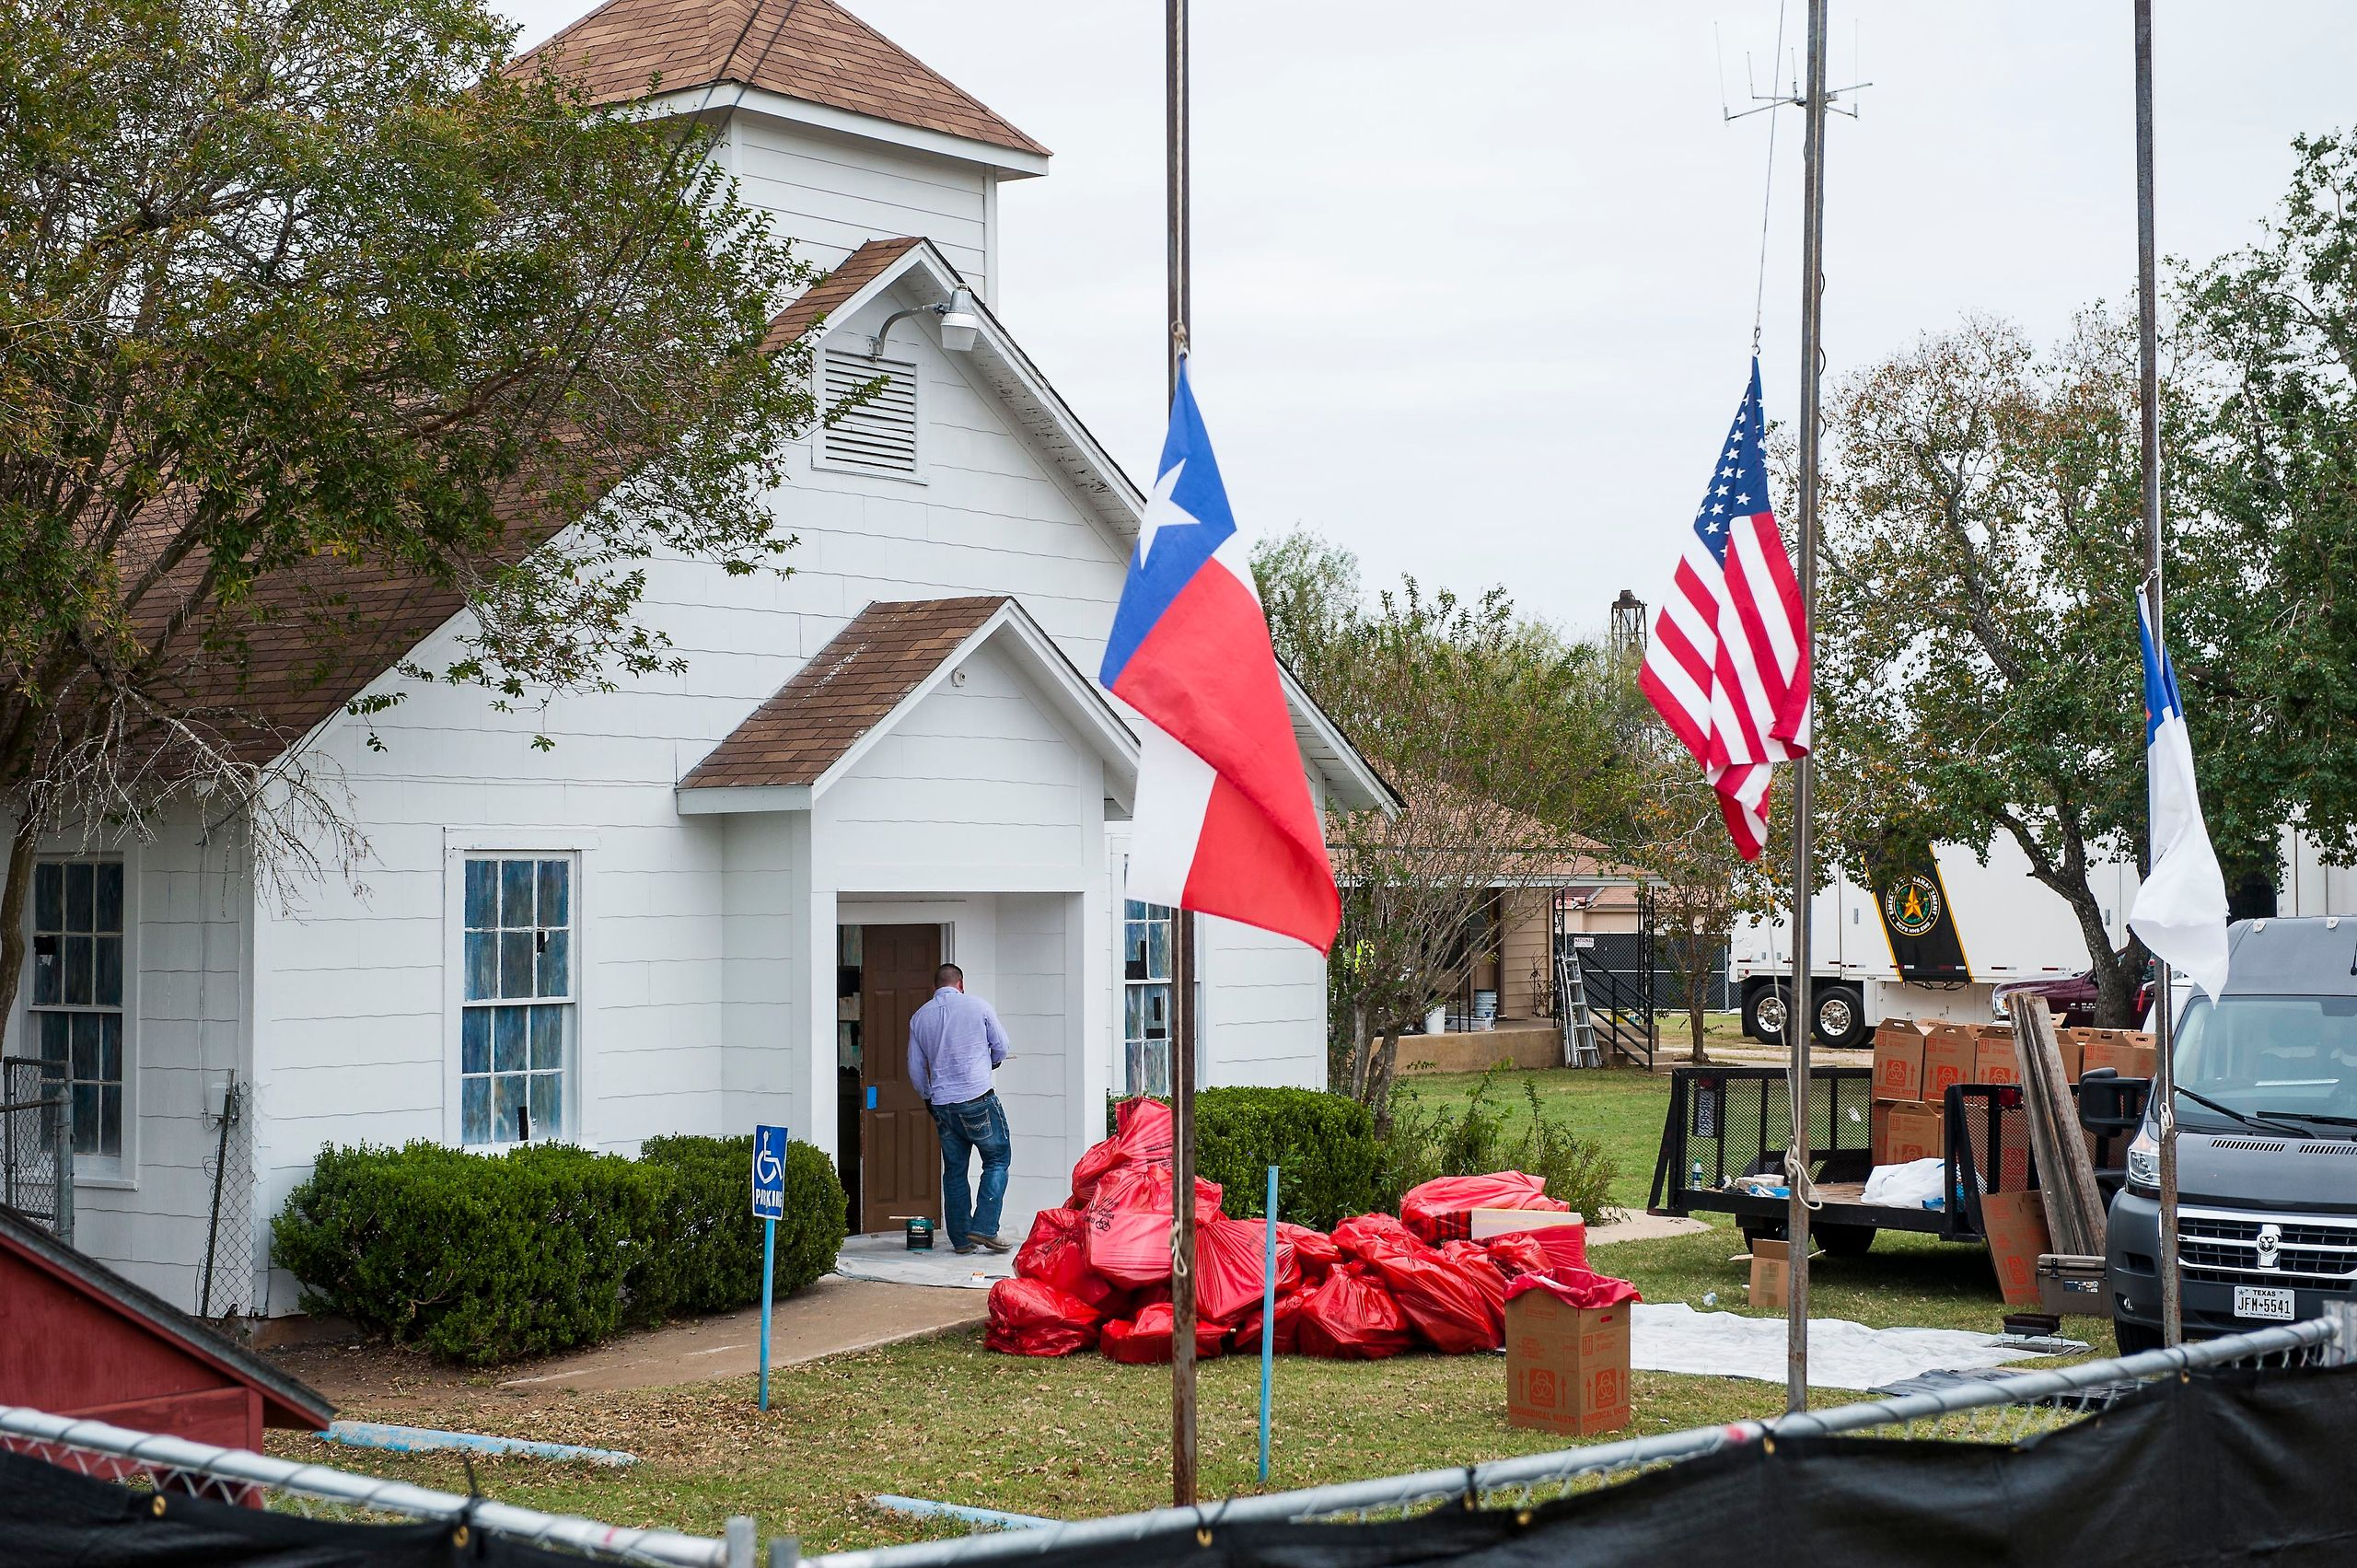 Plastic bags are piled up outside First Baptist Church in Sutherland Springs, Texas, as hazardous materials are removed from